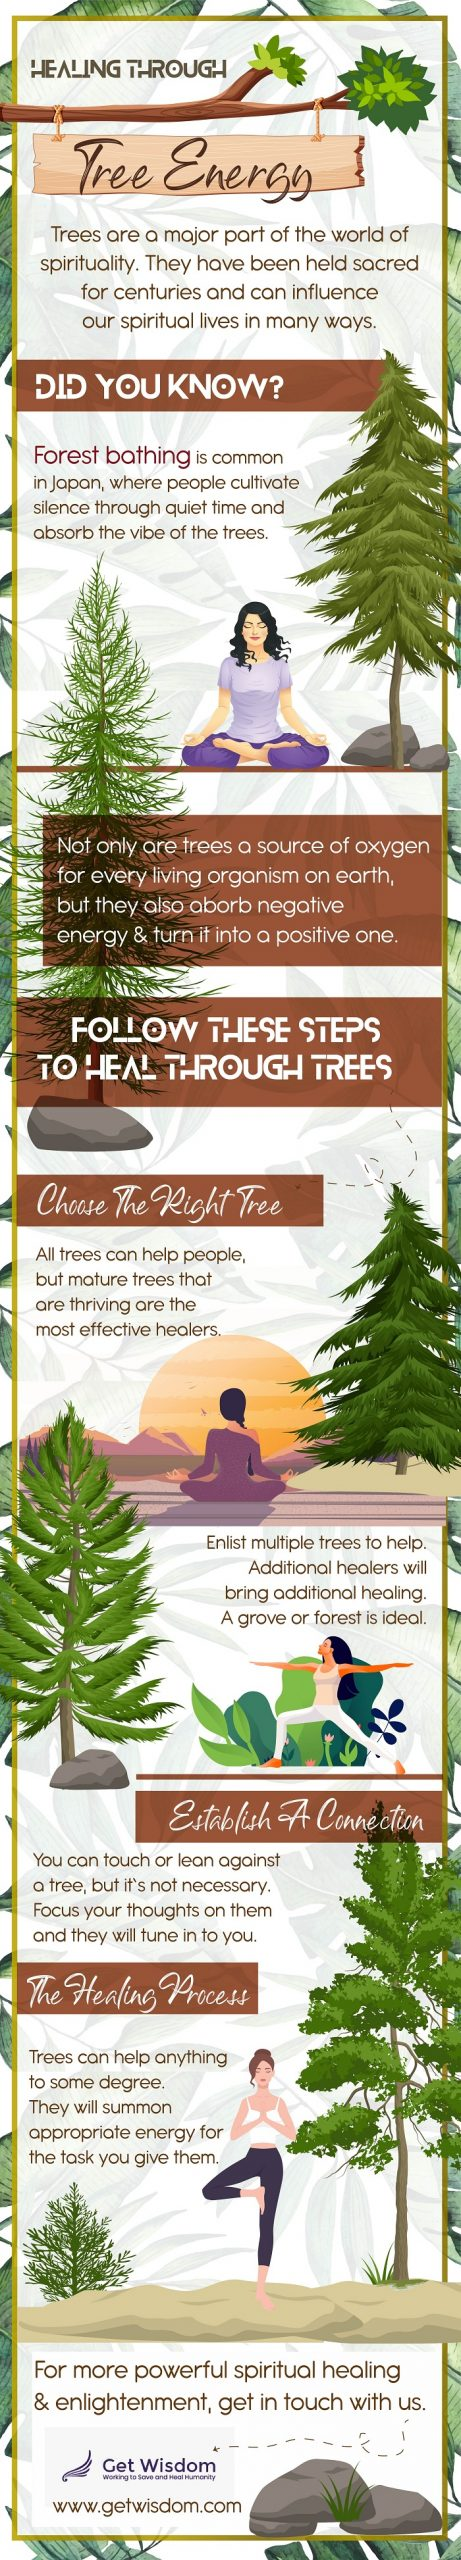 Trees are a major part of the world of spirituality. They have been held sacred for centuries and can influence our spiritual lives in many ways.